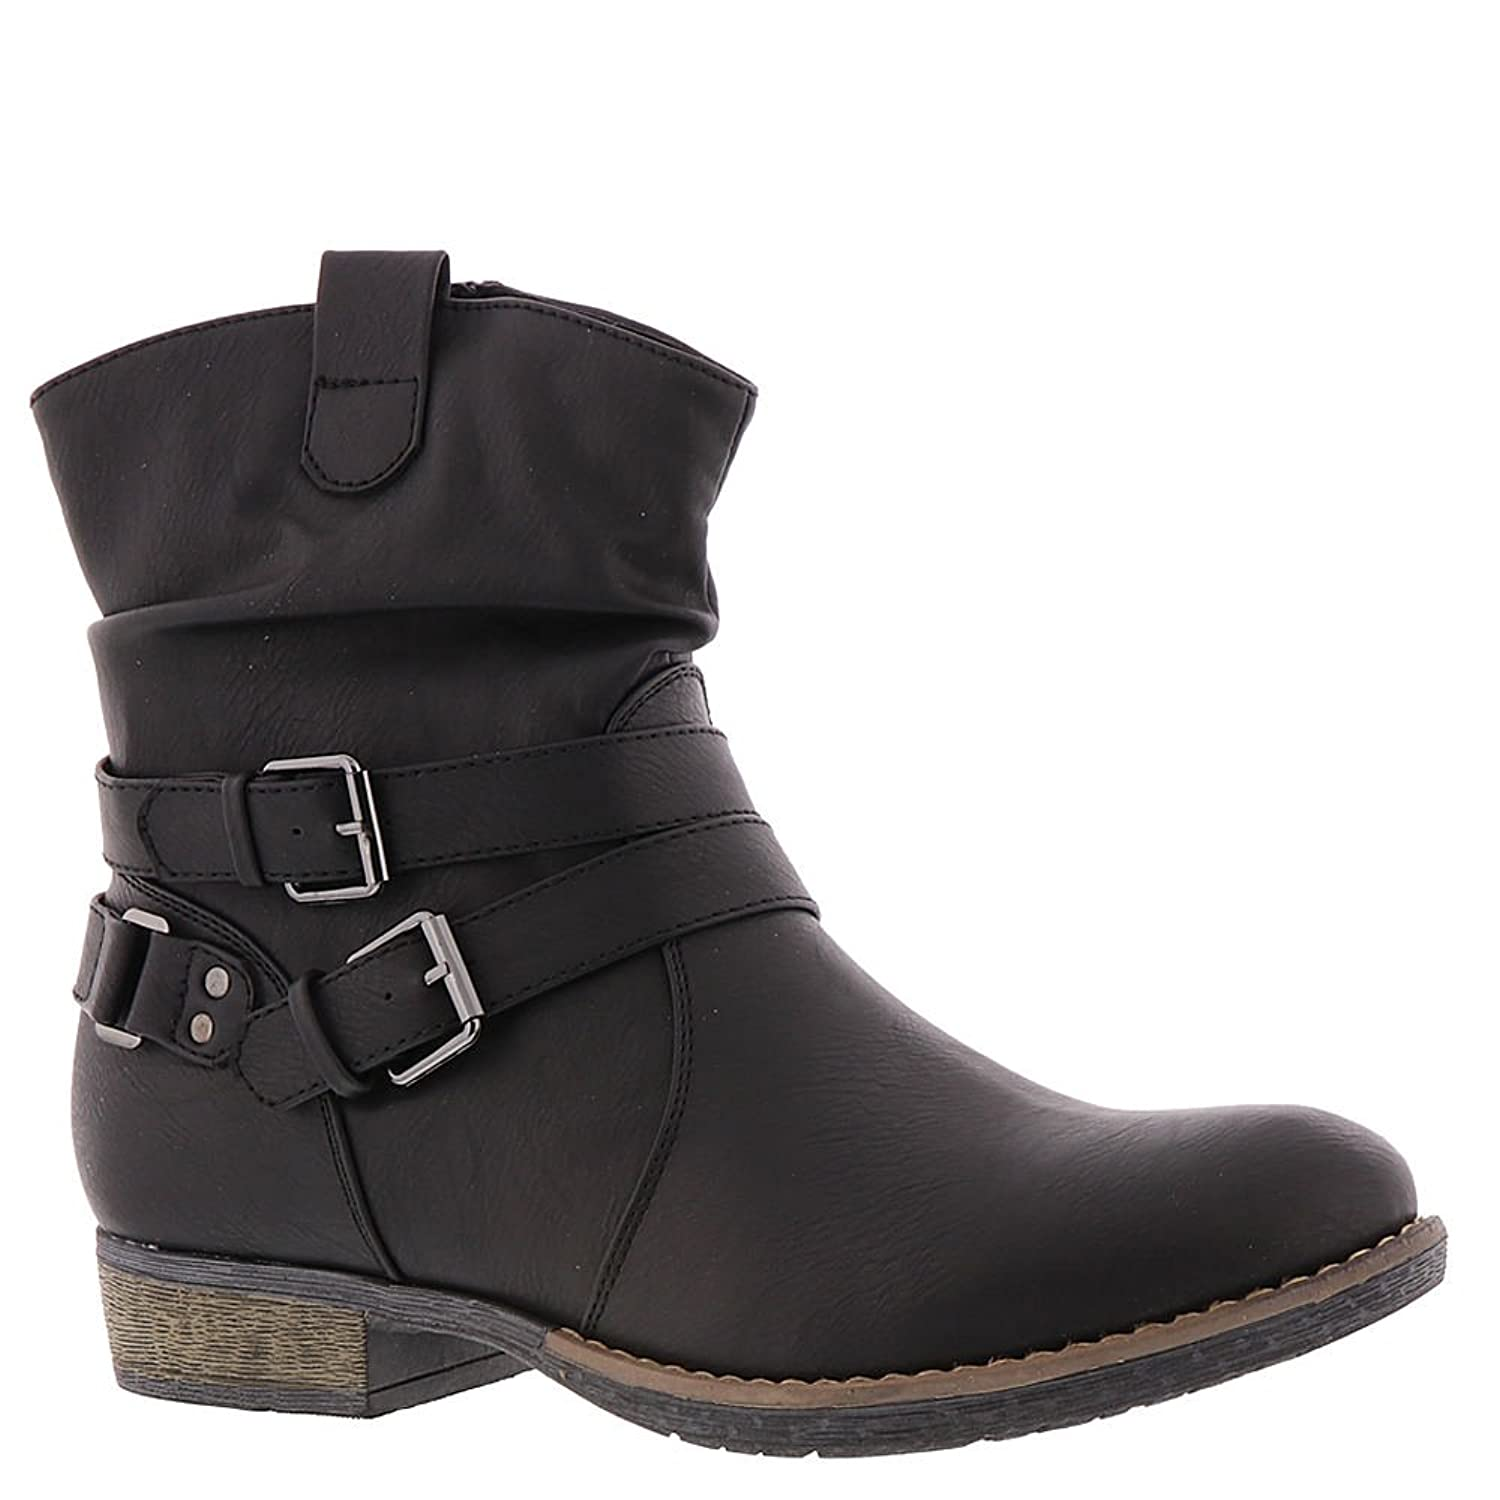 ambroise Women's Boot